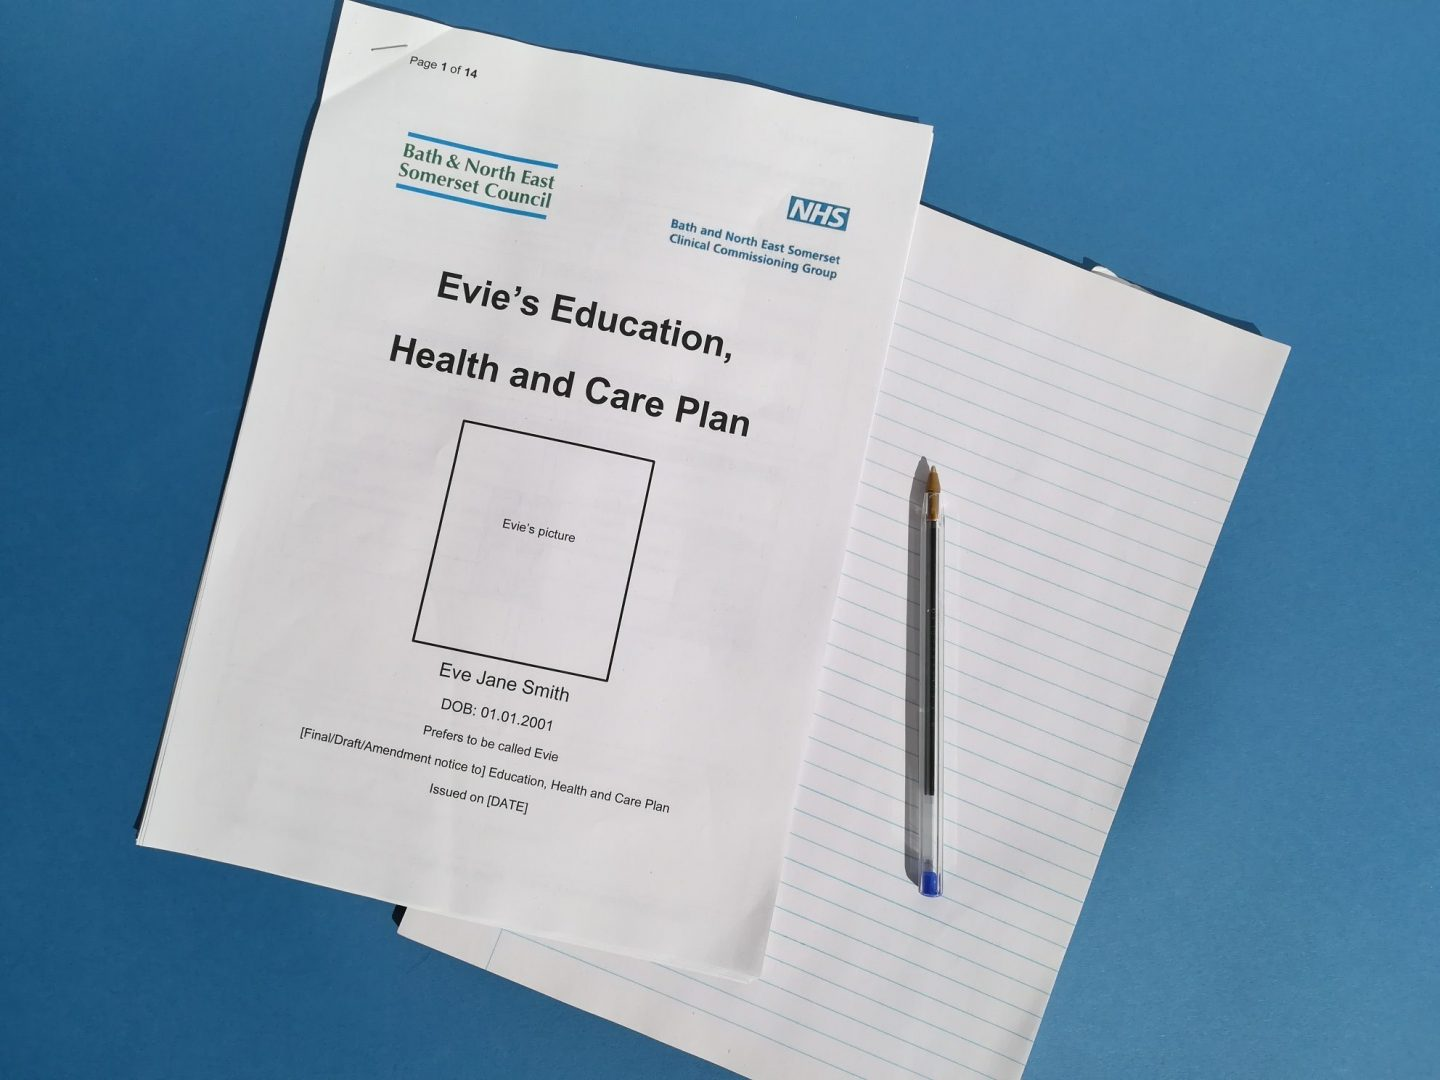 Education health and care plan